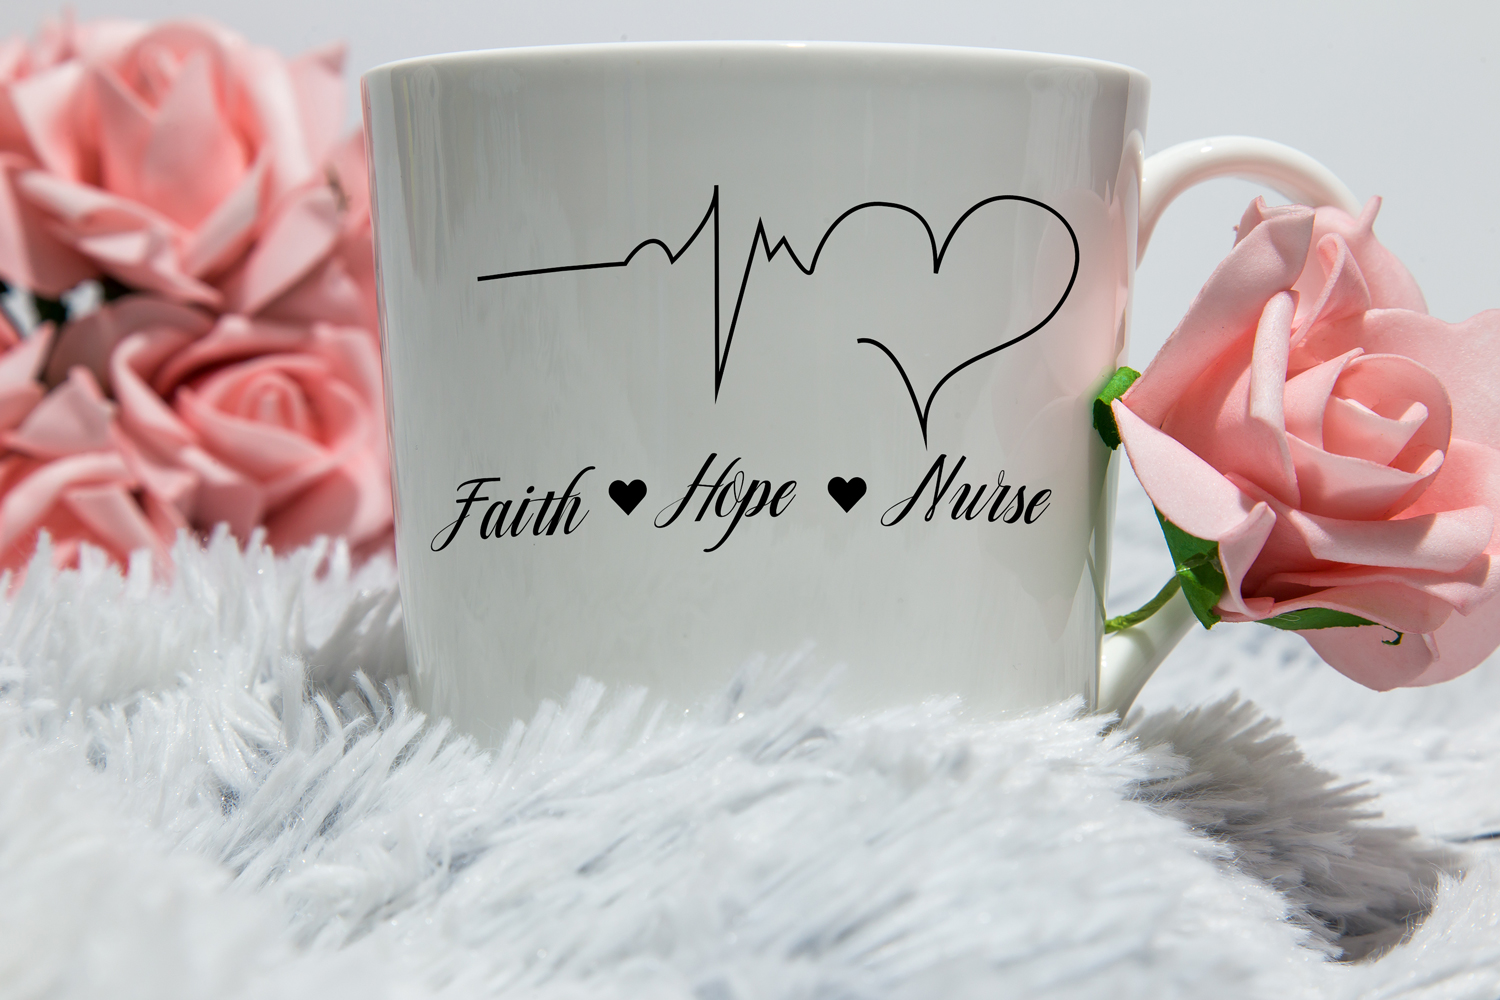 Faith Hope Nurse Svg,Dxf,Png,Jpg,Eps vector file example image 1